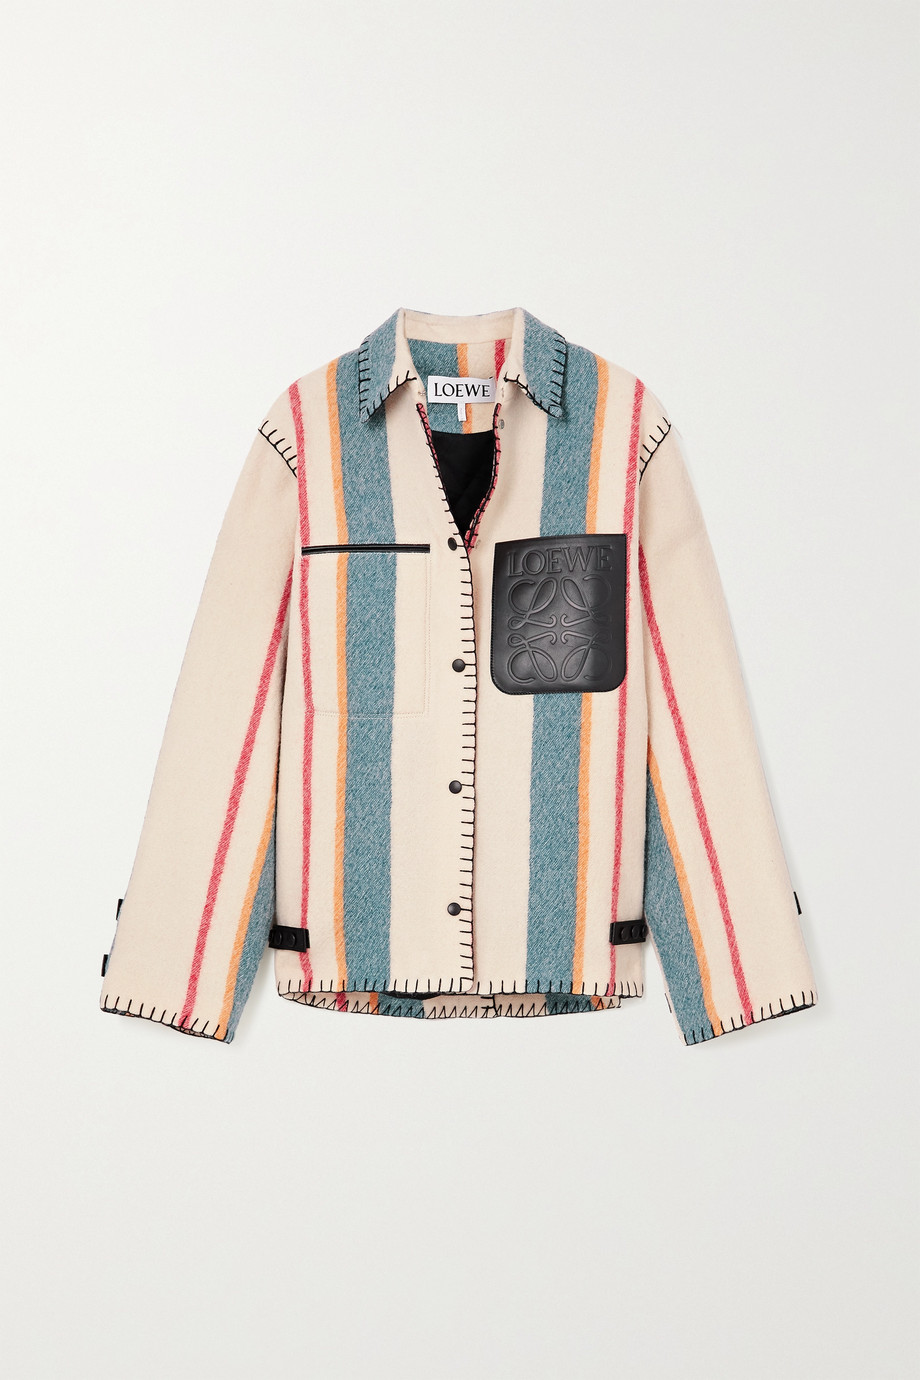 Loewe Leather-trimmed striped wool jacket